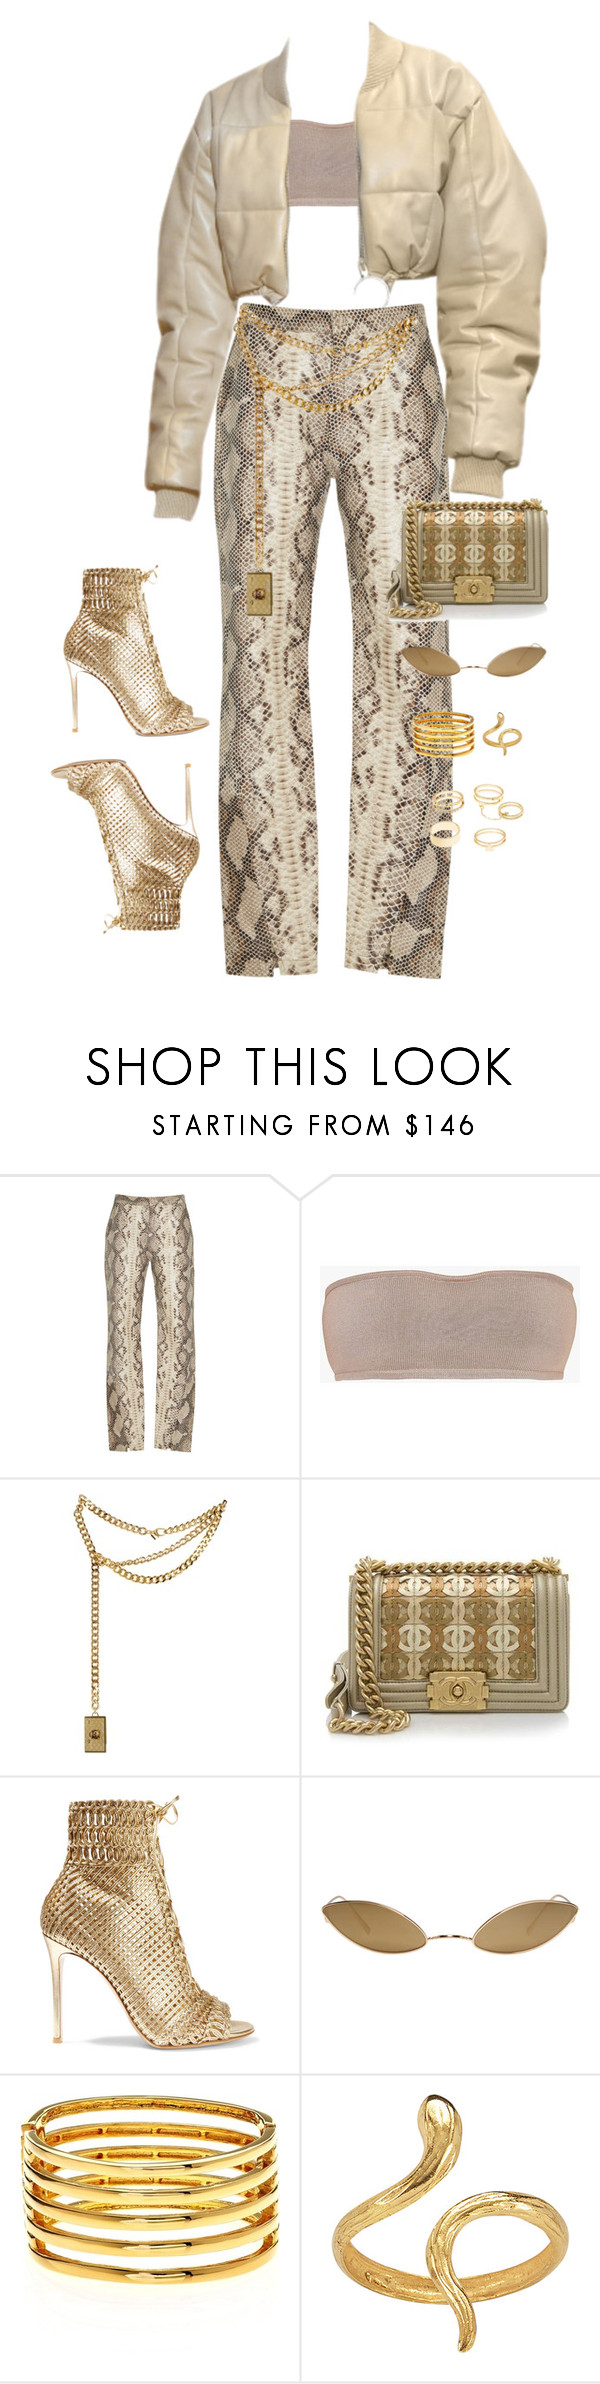 """24K"" by victoriaburton1 ❤ liked on Polyvore featuring Zeynep Arçay, Balmain, Moschino, Chanel, Gianvito Rossi, Acne Studios, Kenneth Jay Lane, Madina Visconti di Modrone and Charlotte Russe"